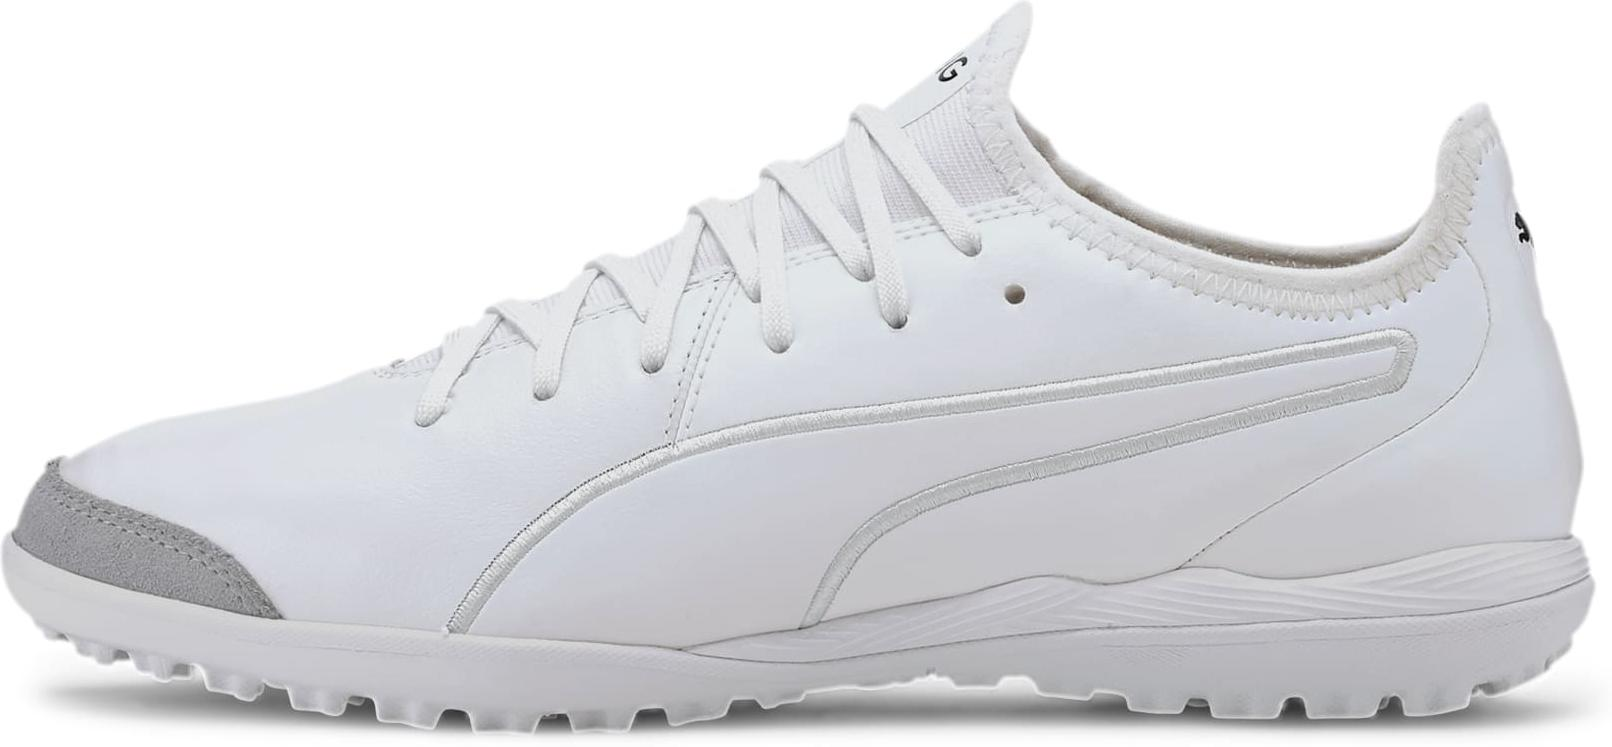 Football shoes Puma KING PRO TF